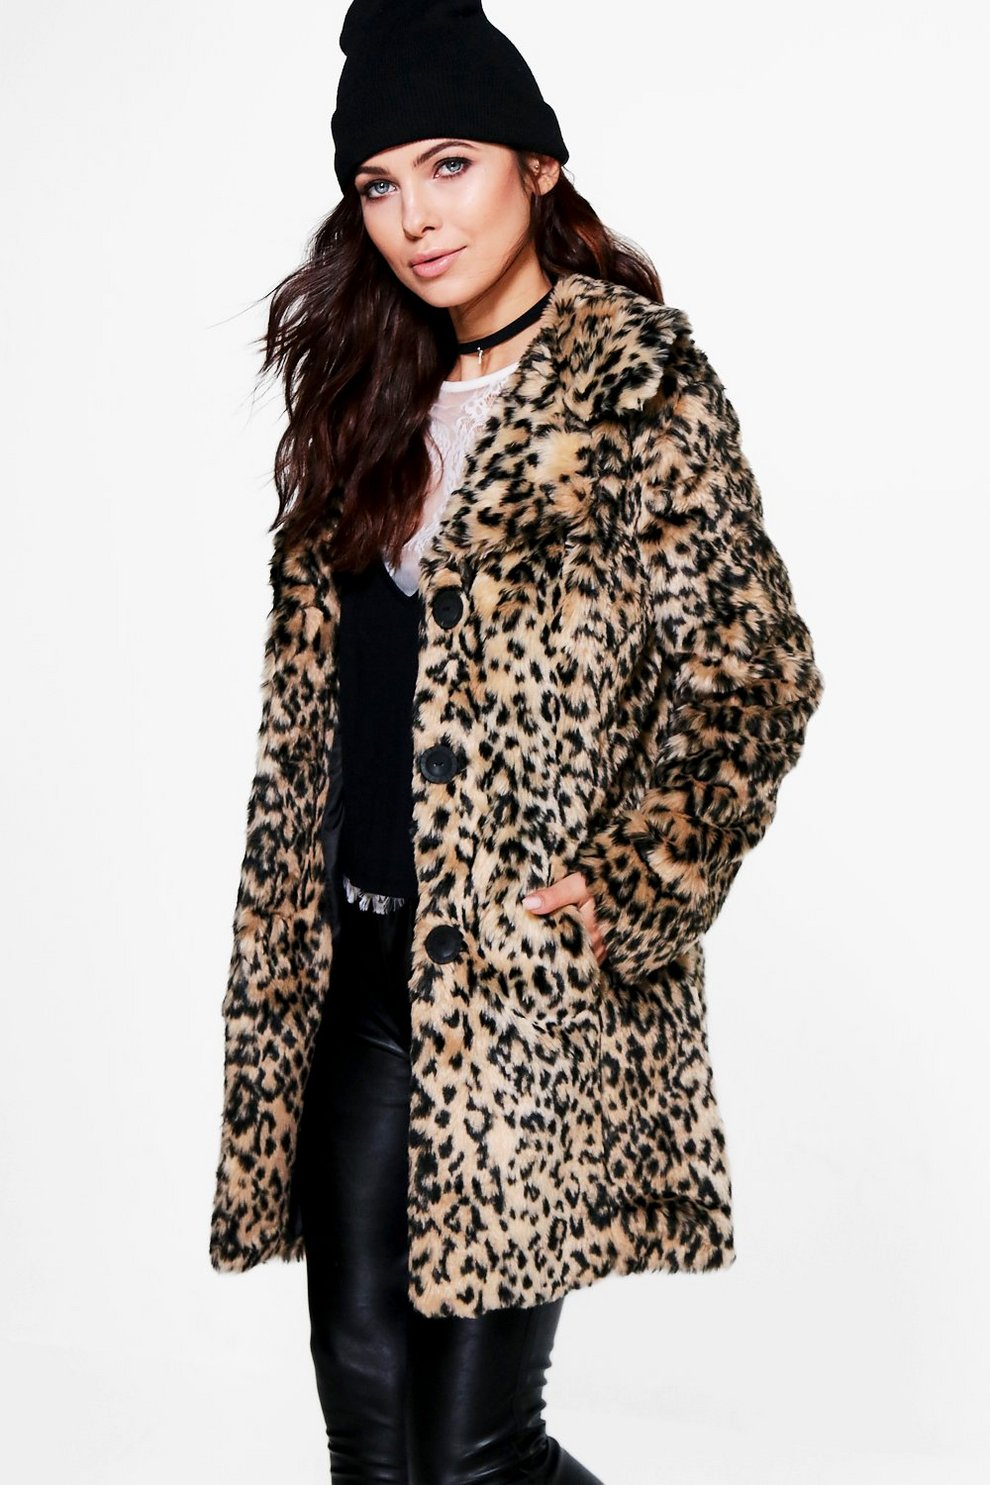 Watch 20 Leopard Printed Fur Coat Outfits video